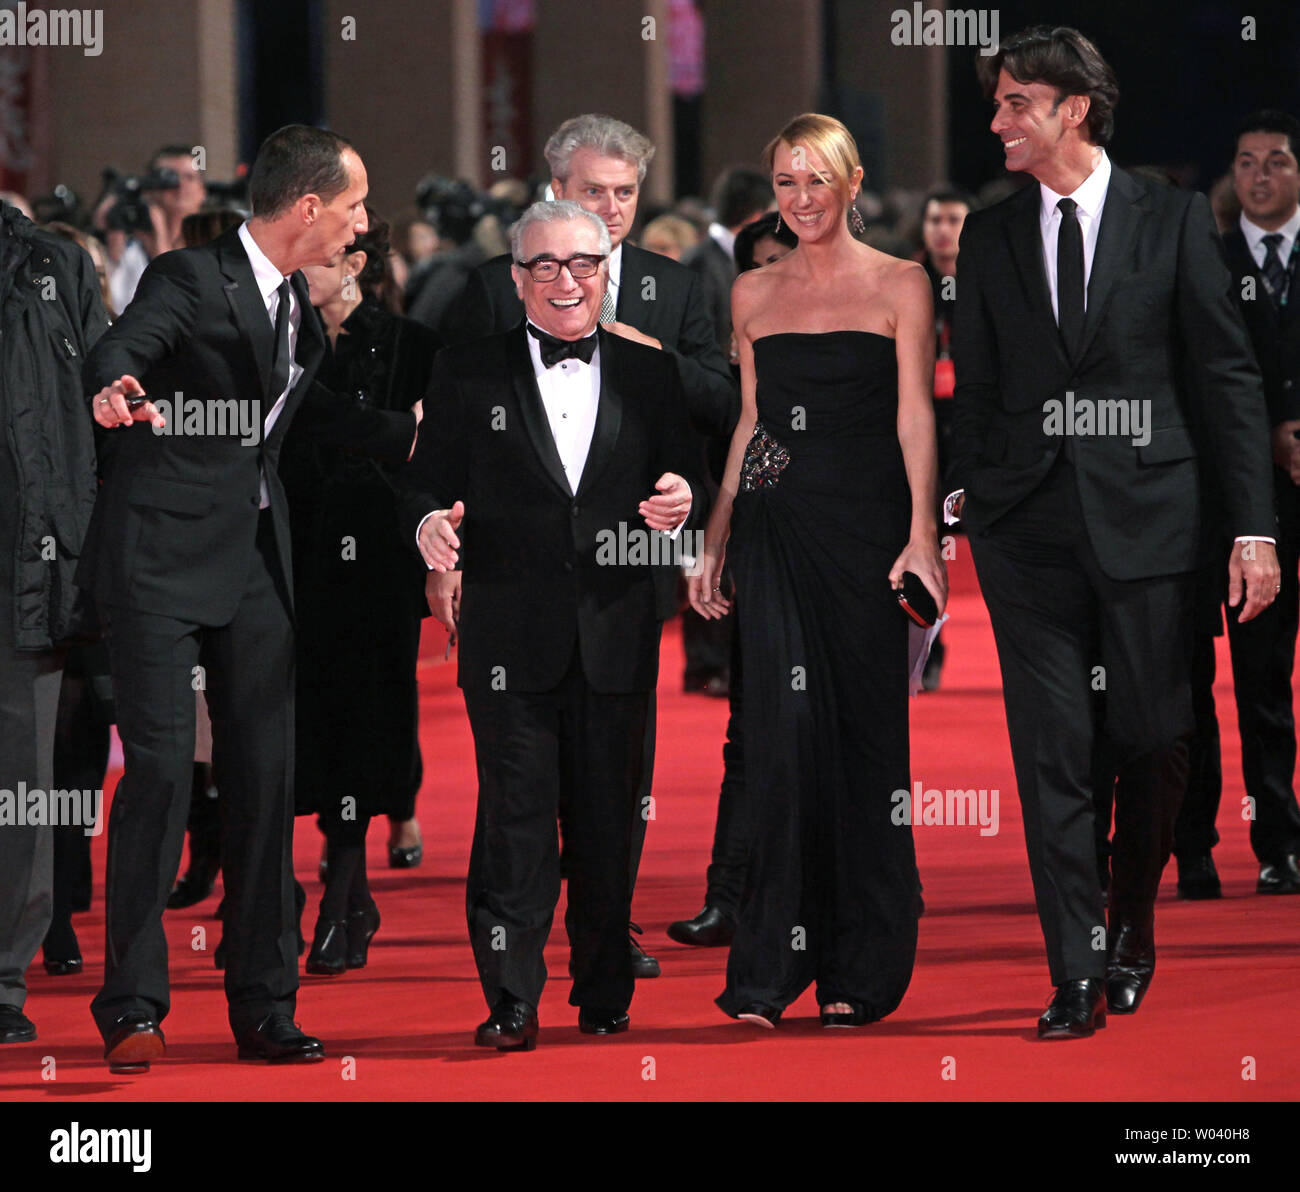 Martin Scorsese (C) leads a delegation down the red carpet before the screening of a digitally restored version of the 1960 classic film 'La Dolce Vita' during the 5th Rome International Film Festival in Rome on October 30, 2010.   UPI/David Silpa - Stock Image